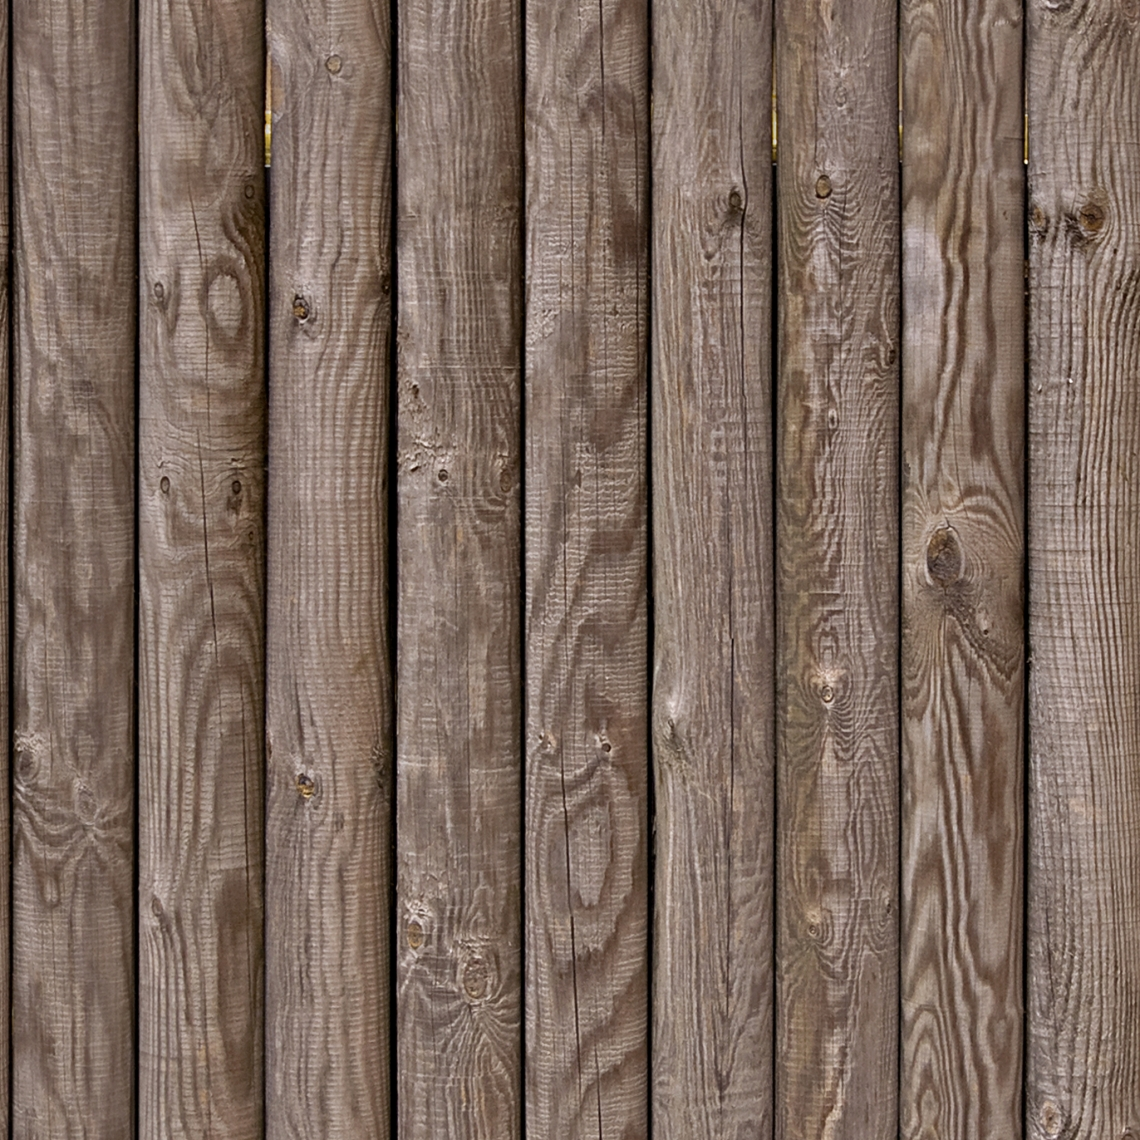 Seamless Wood Planks - Good Textures